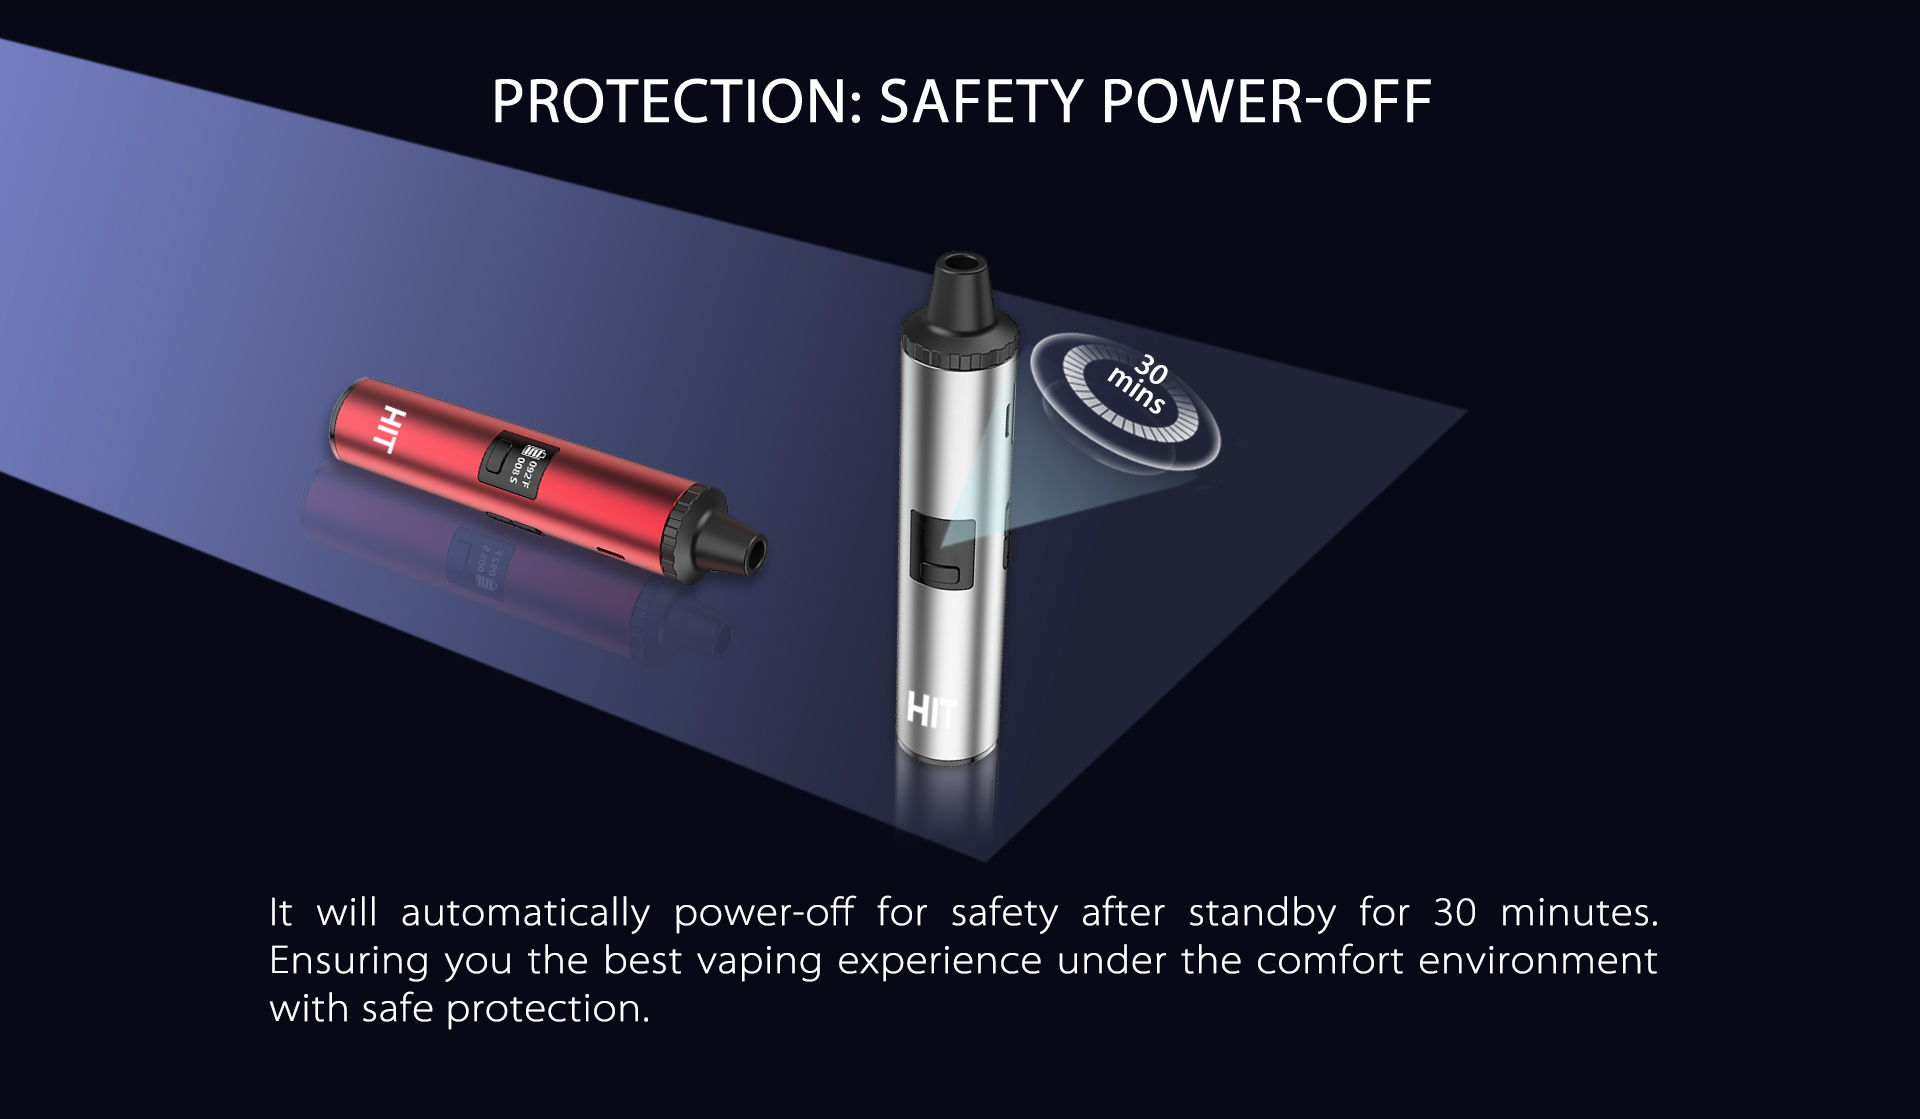 Yocan Hit Vaporizer Pen will automatically power-off for safety after standby for 30 seconds.